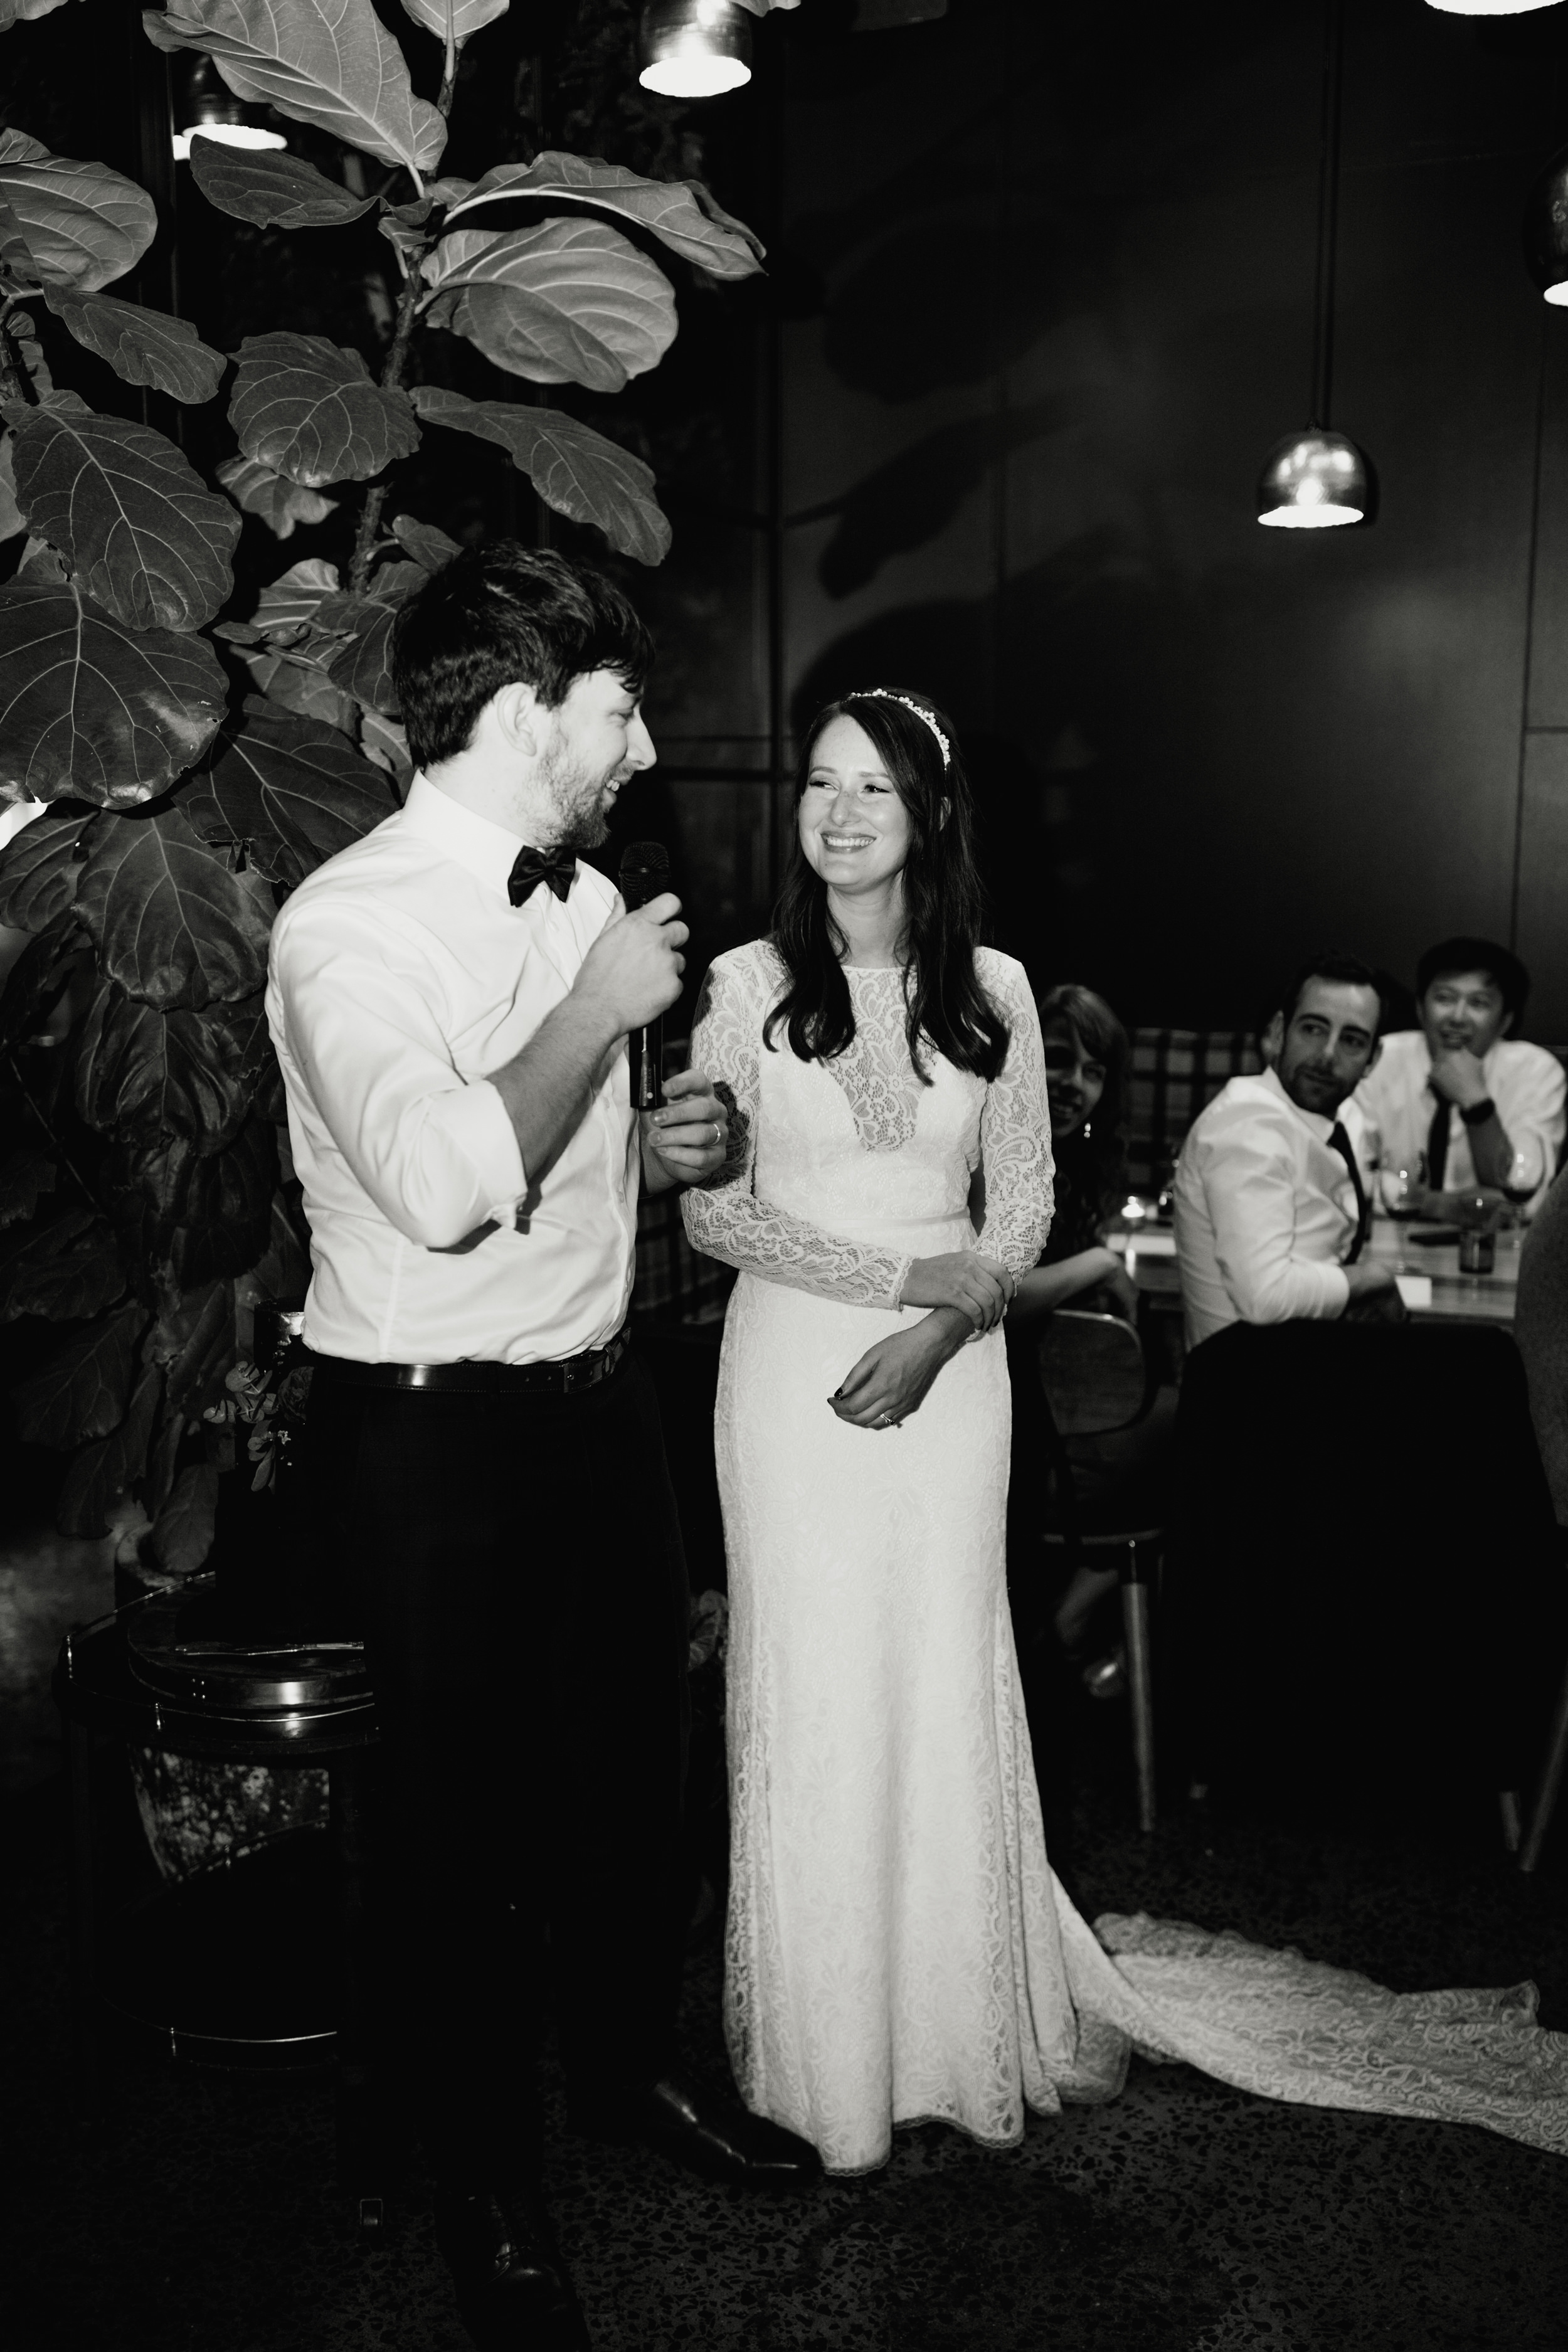 I_Got_You_Babe_Weddings_Emily_Matt_Rupert_Glasshaus_Melbourne0215.JPG